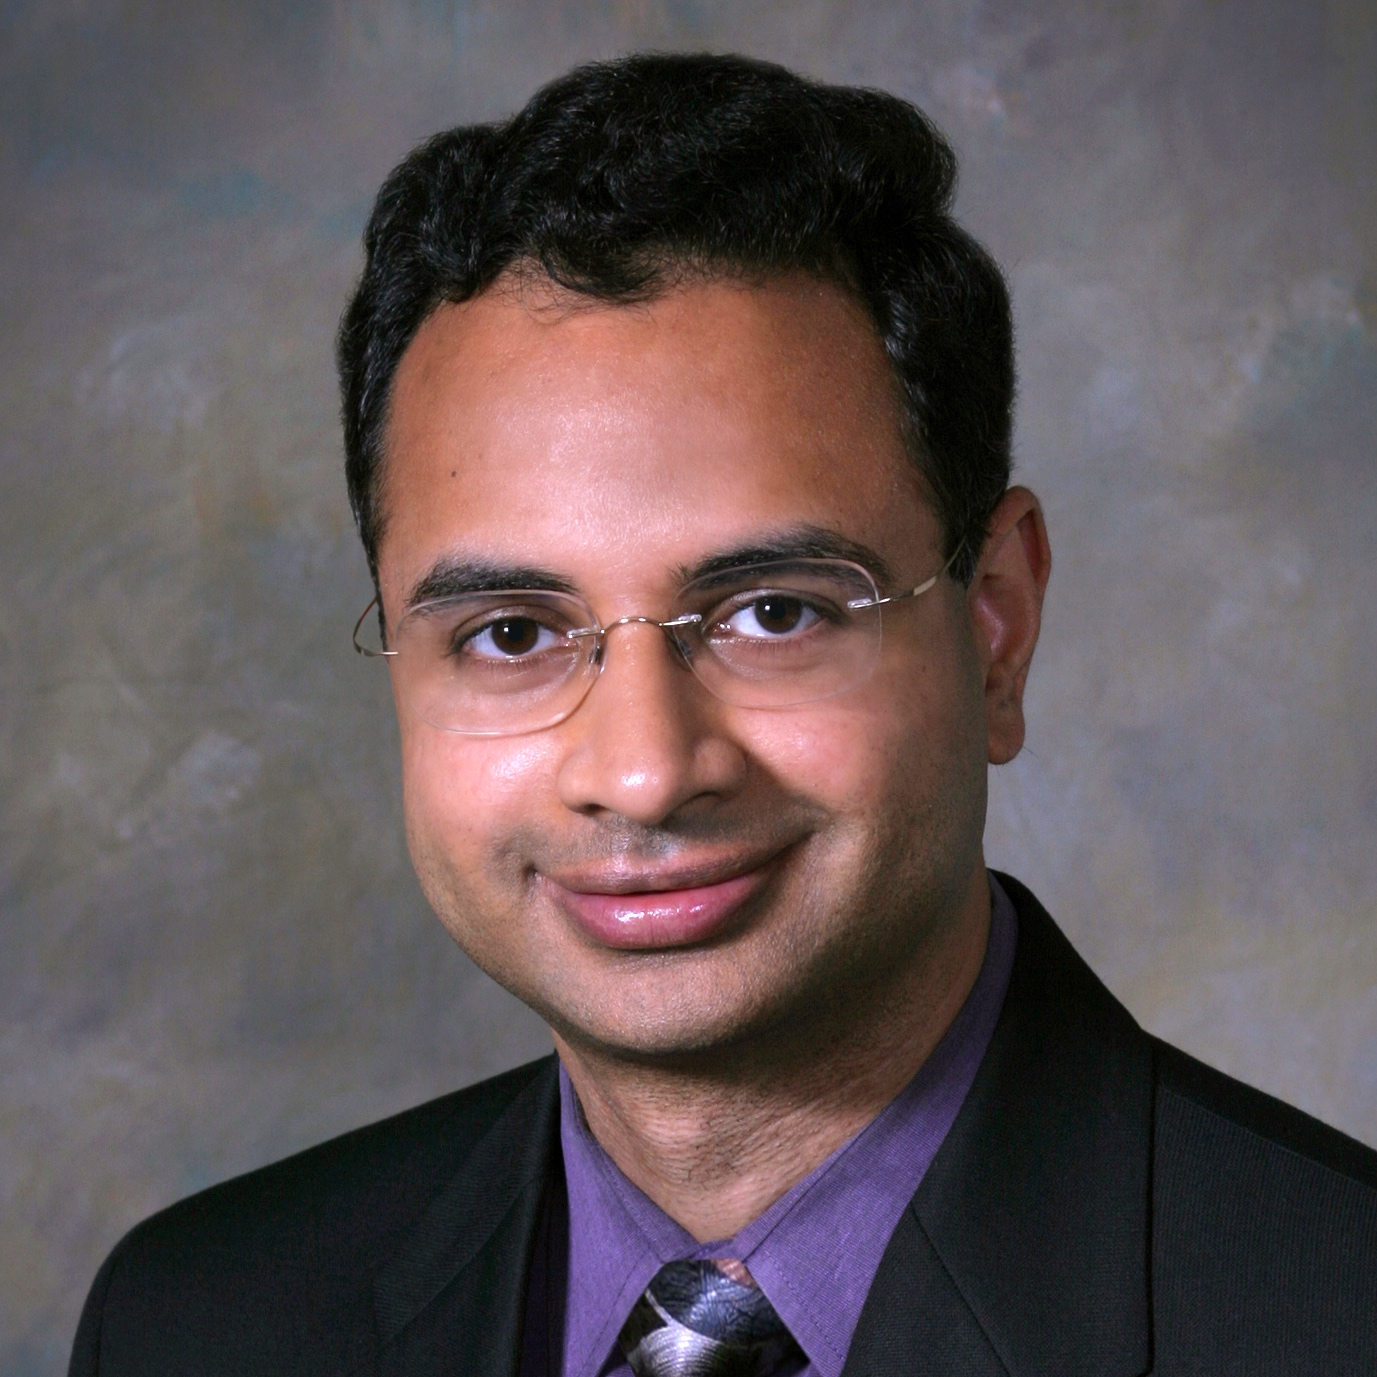 Pratik Mukherjee, MD, PhD - University of California San Francisco